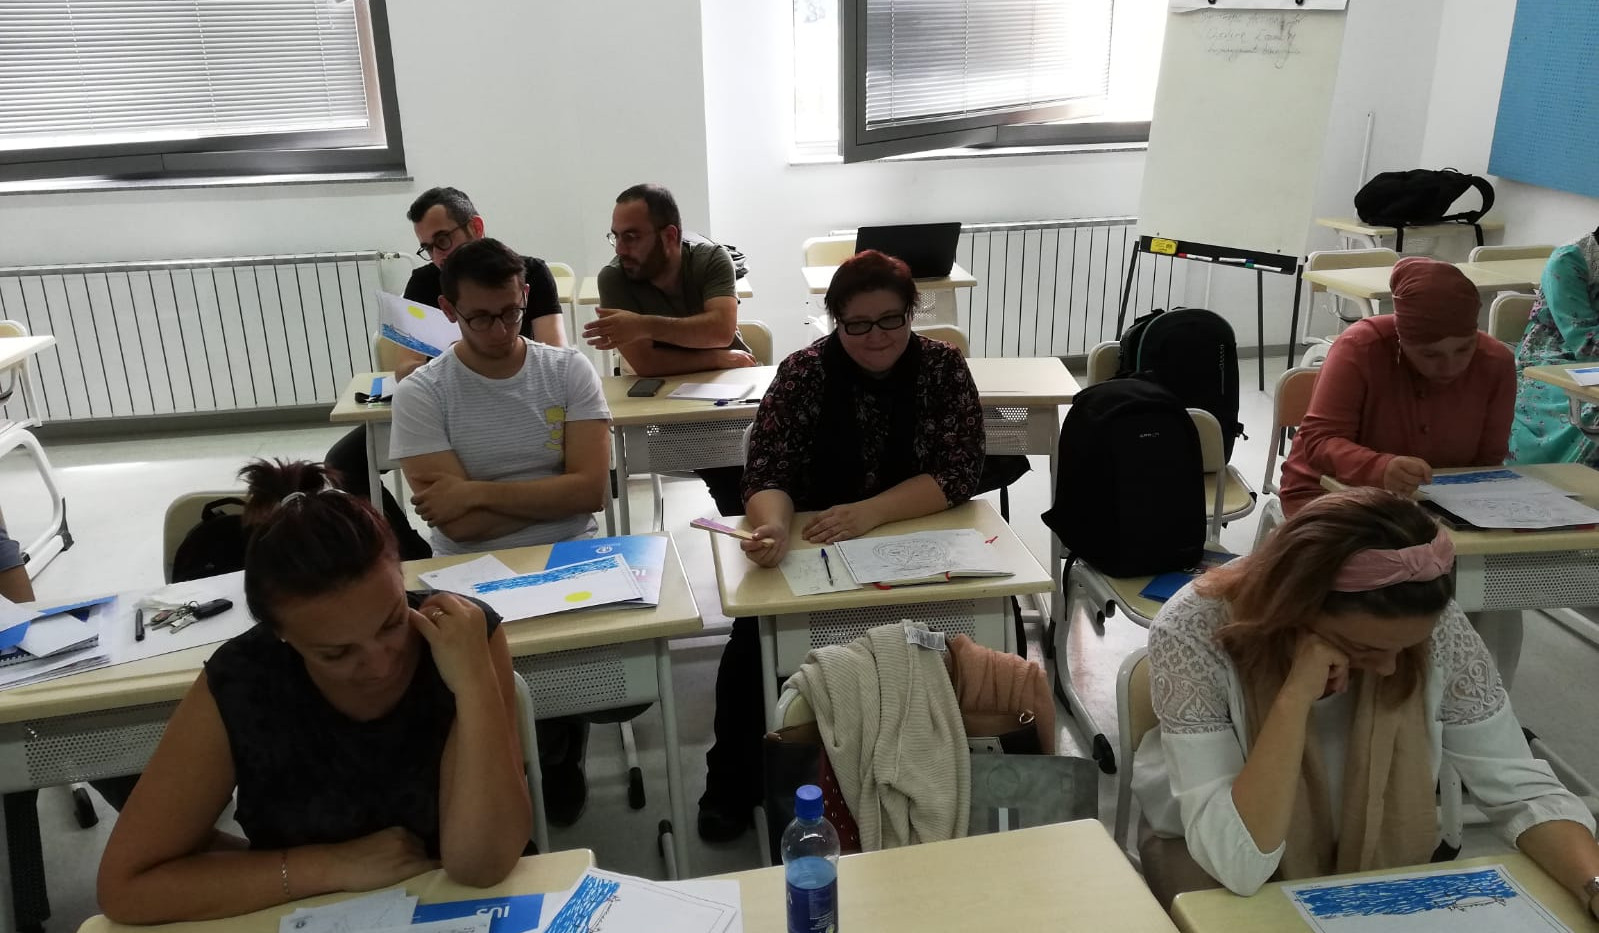 Students participating in exercises on inclusion that promotes equality and fundamental human-rights at the International University of Sarajevo/Balkan Studies Centre.